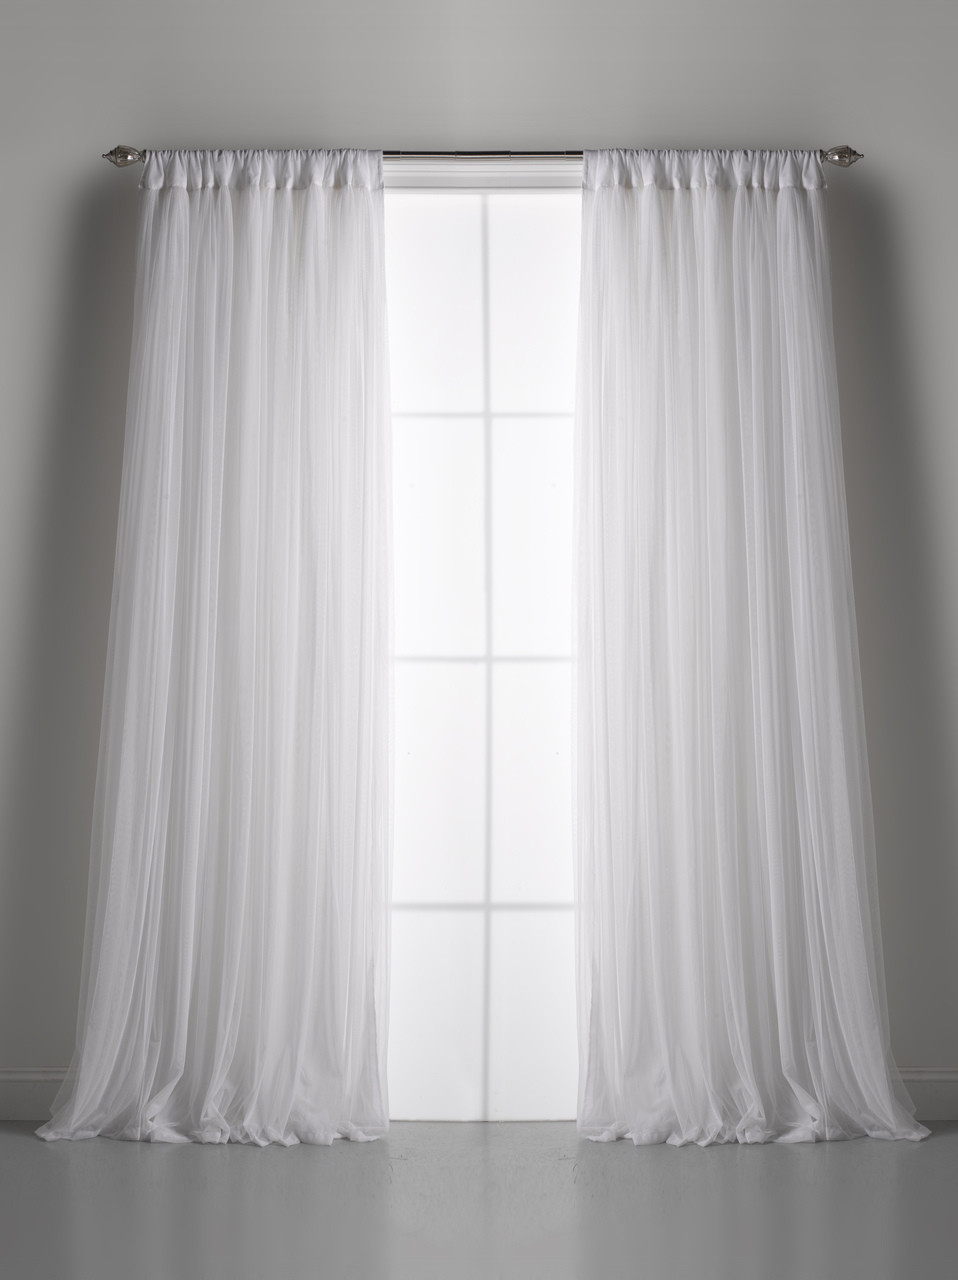 Couture Dreams Whisper White Window Curtain